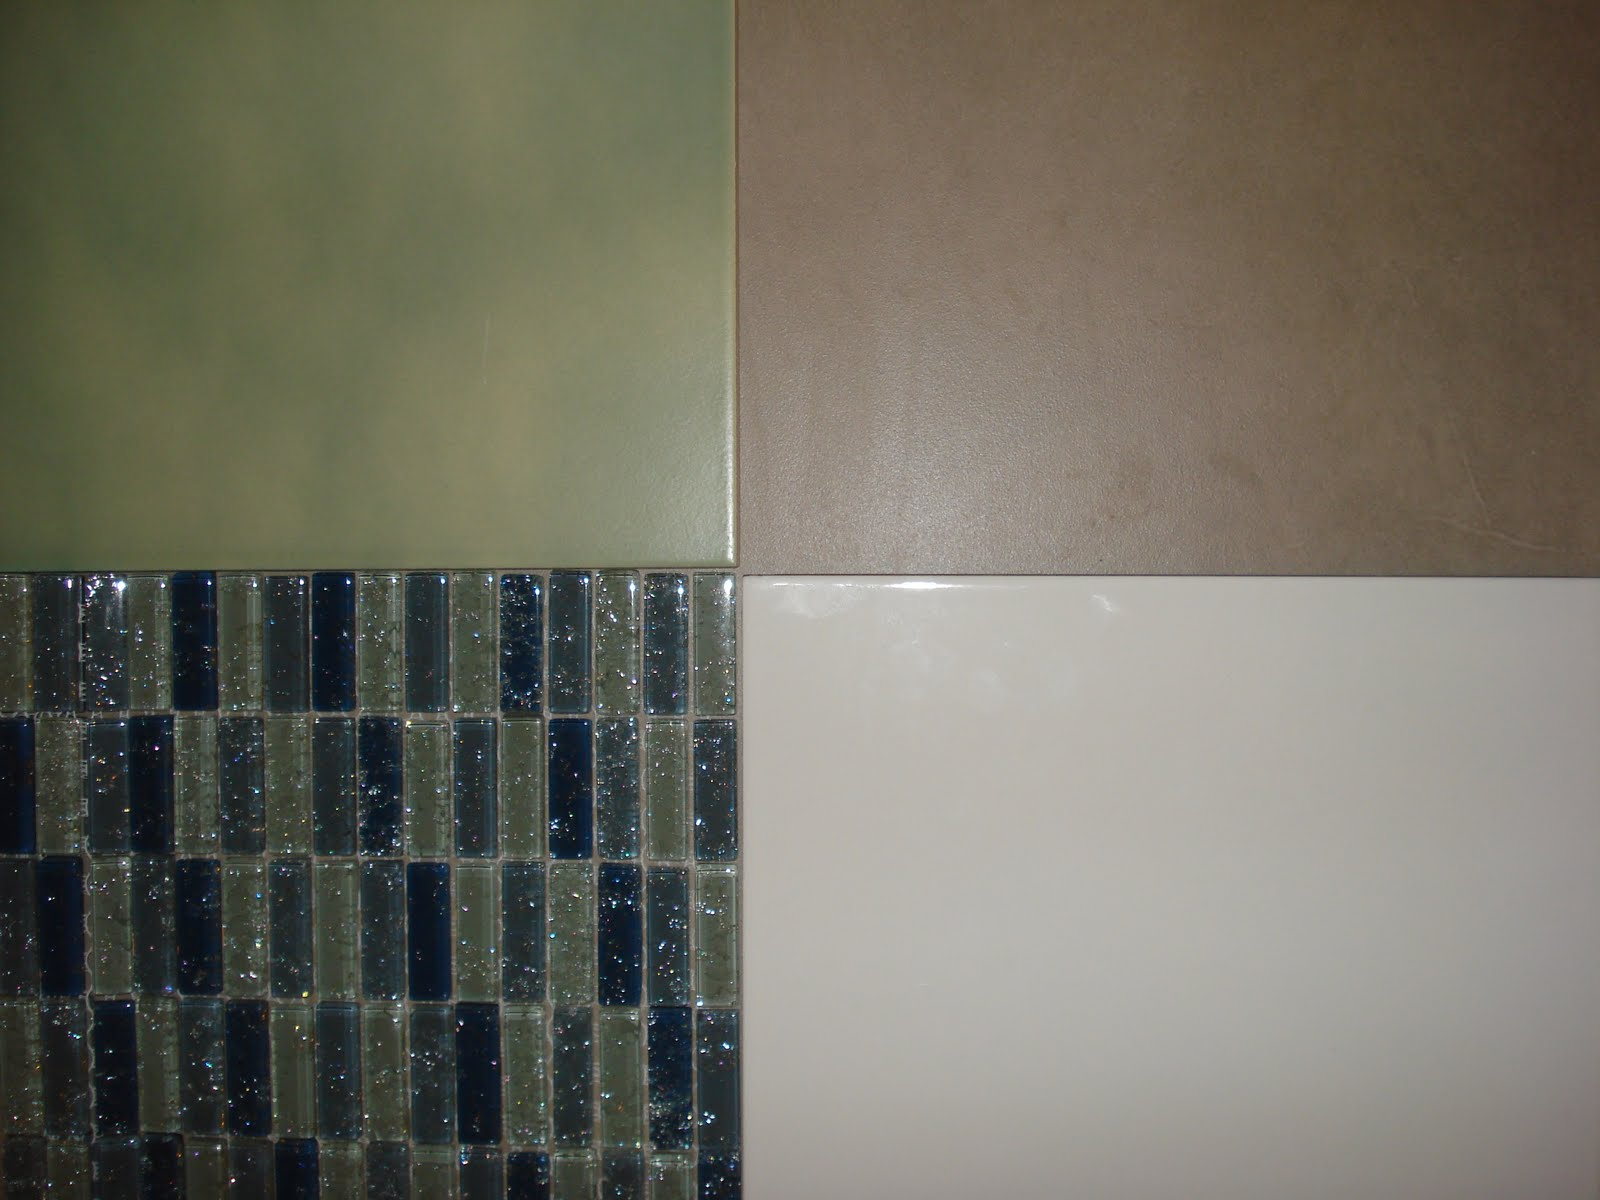 Unique However, There Is Certain Rule Of Thumb For Placing Specific Bathroom Tile Designs For Small Bathrooms Ceramic Tiles Go Everywhere But, Stick To Using Glass And Metal Tiles Only For Backsplash Designs Again Stick To Neutral Colors Lay